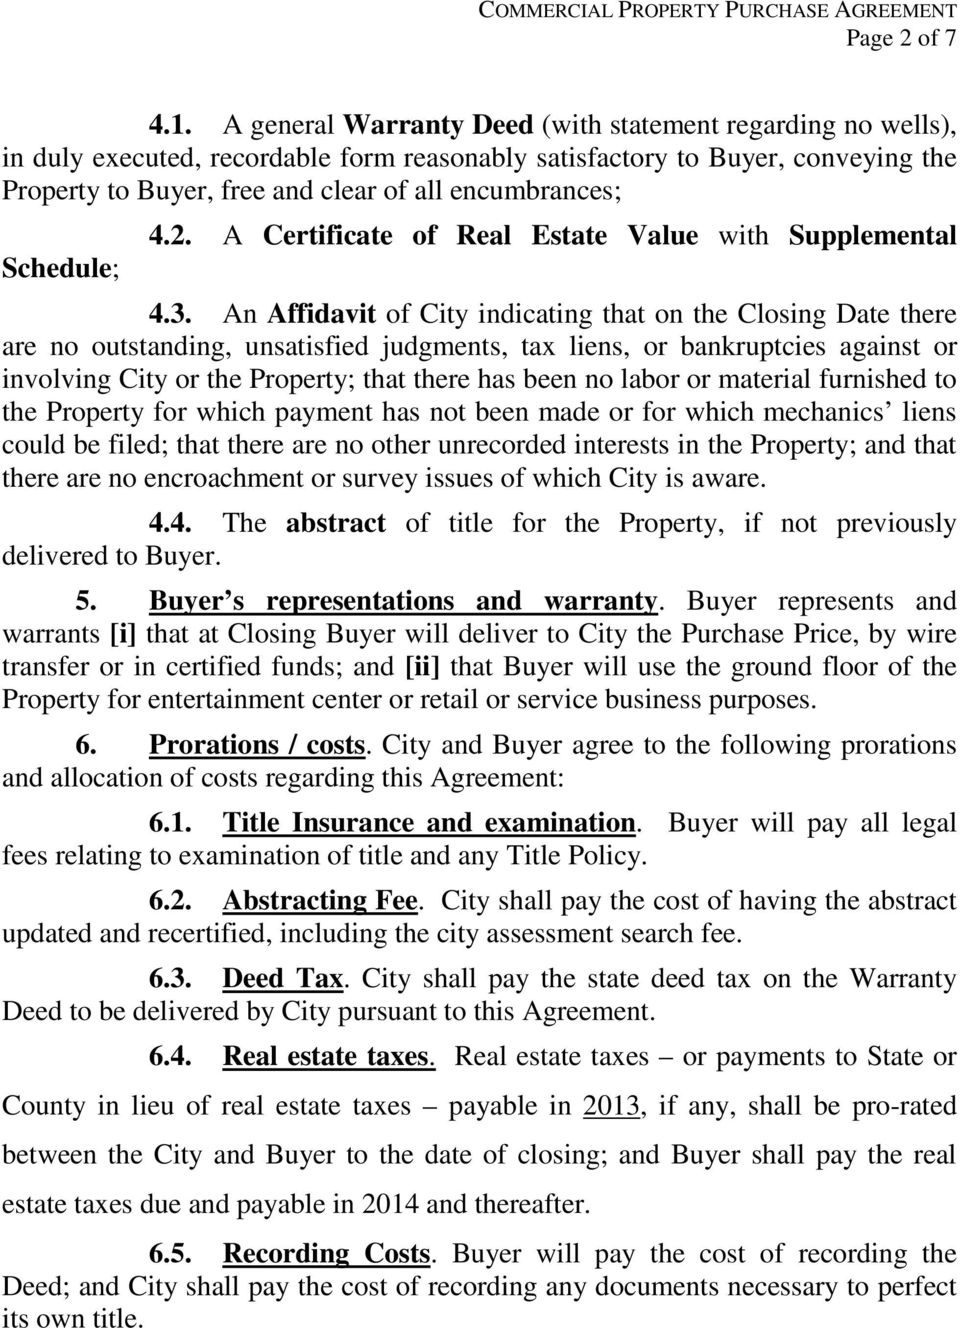 City Of Jackson Minnesota Commercial Property Purchase Agreement Pdf